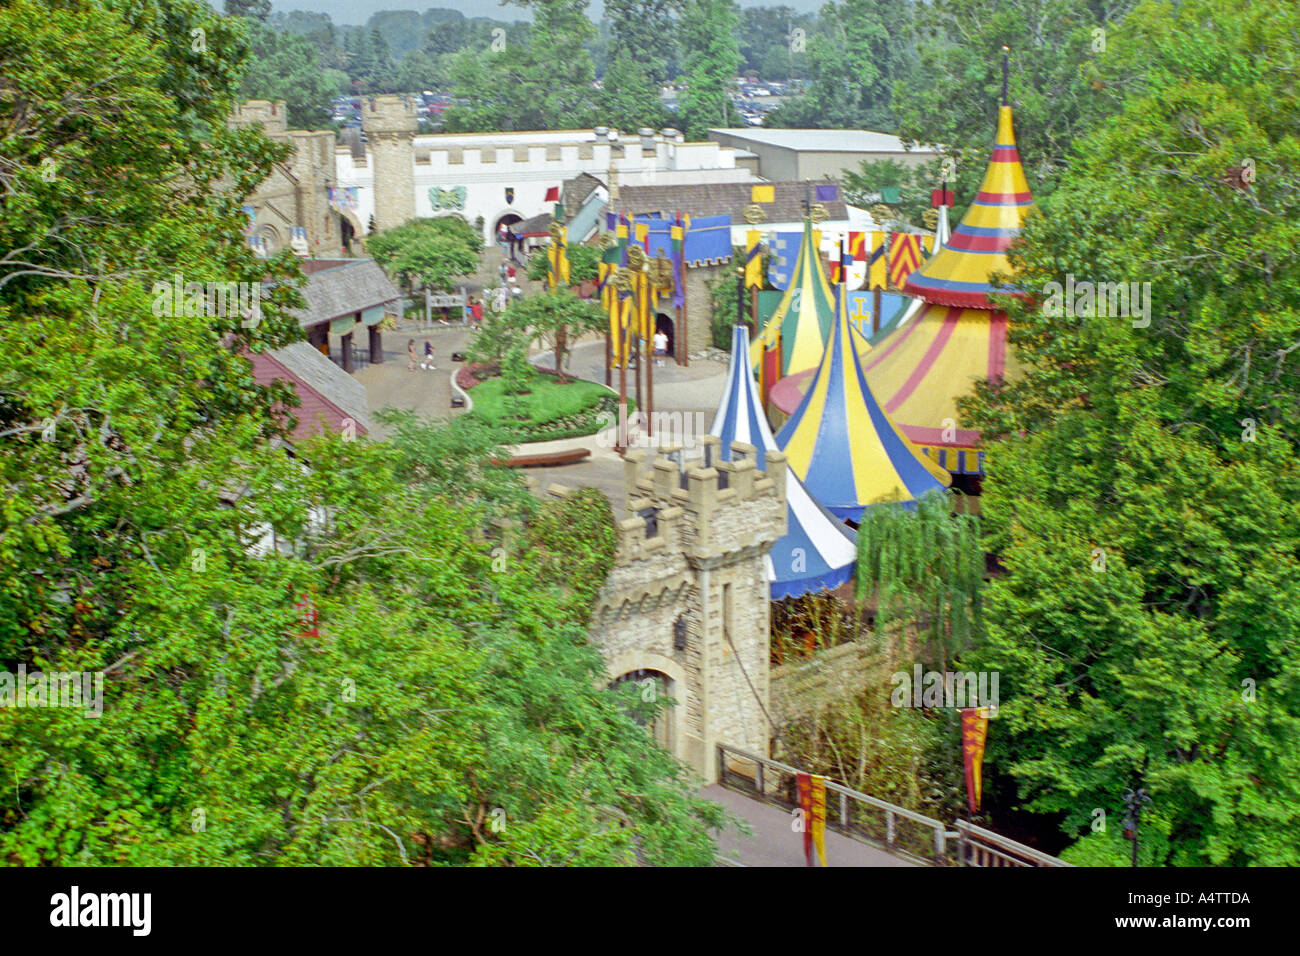 Busch Gardens Williamsburg VA USA